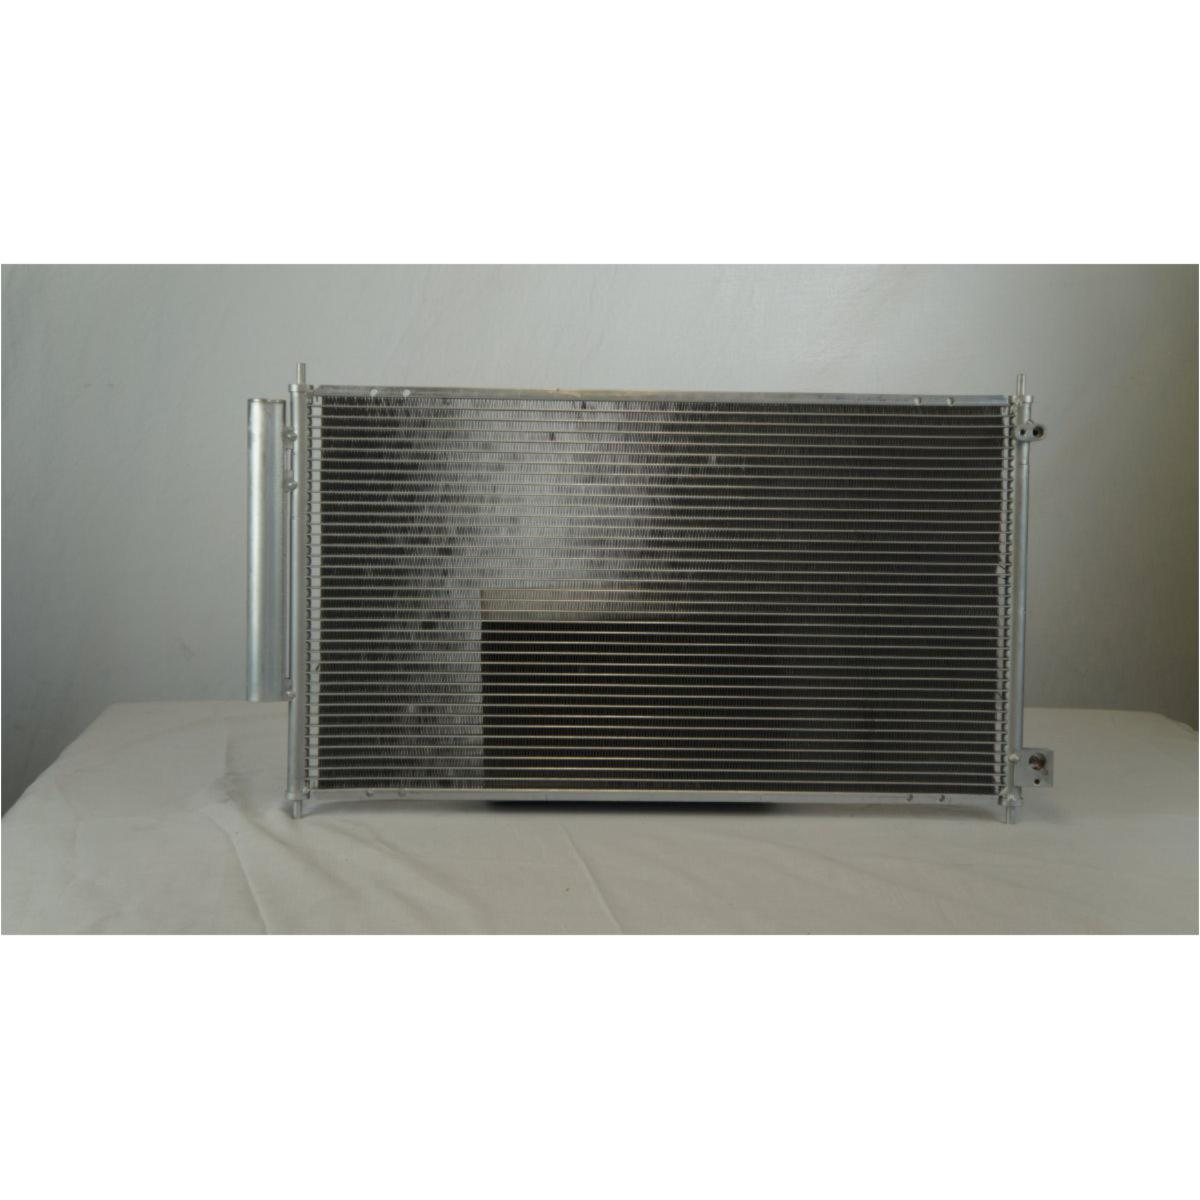 All Aluminum Condenser 1 Row For 2004-2008 Acura TSX